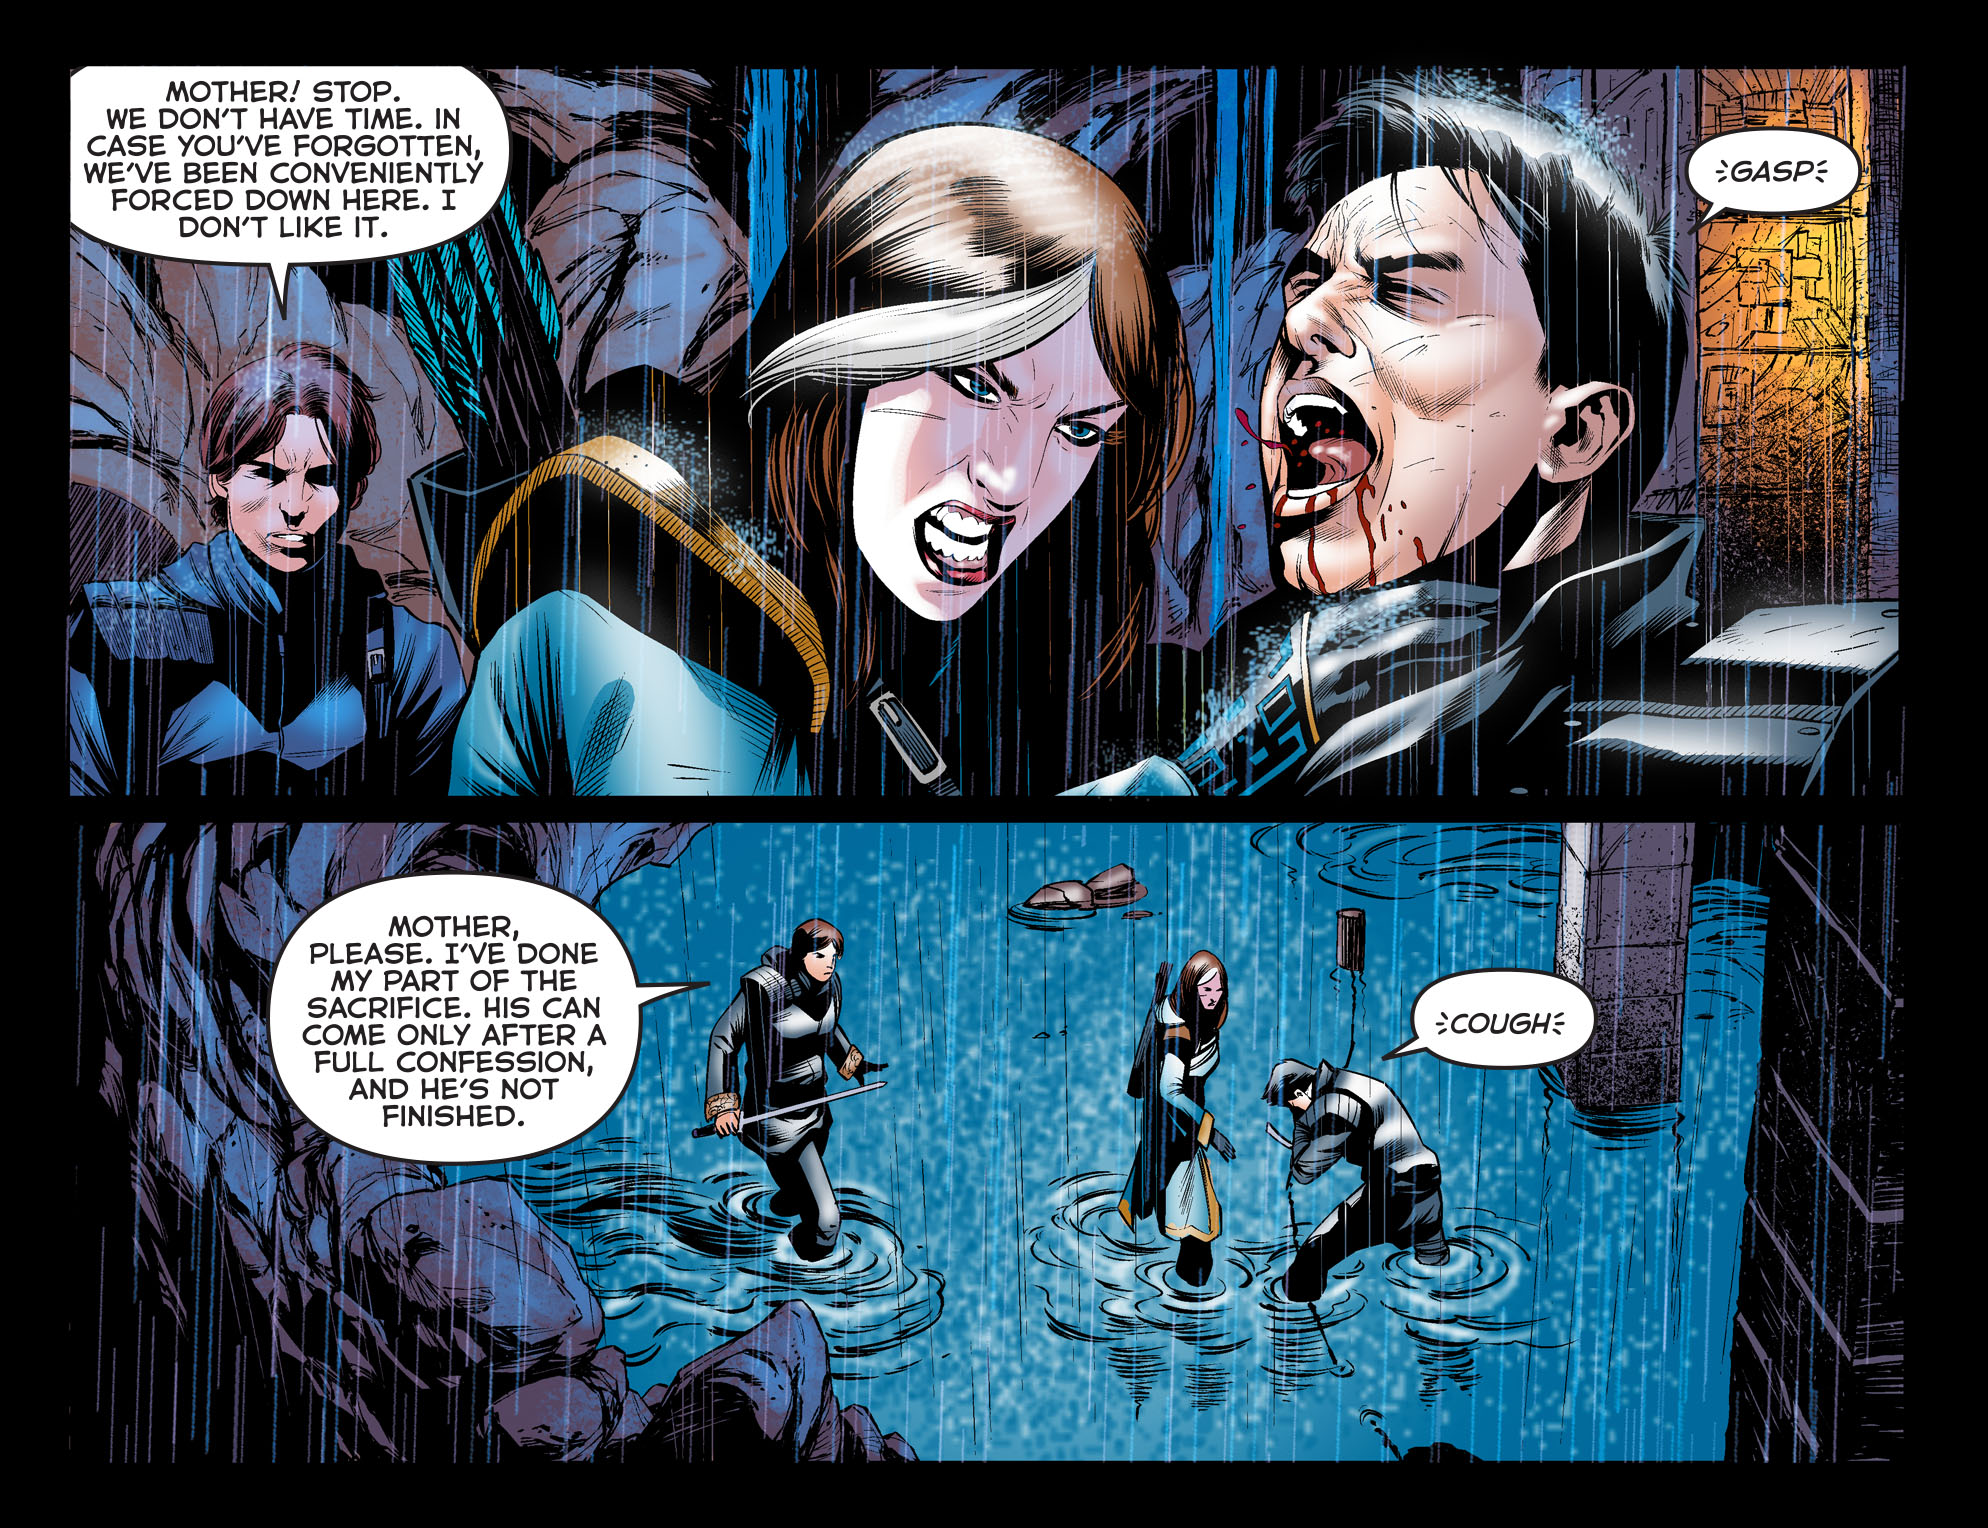 ARROW: DARK ARCHER Chapter 6 panel 5